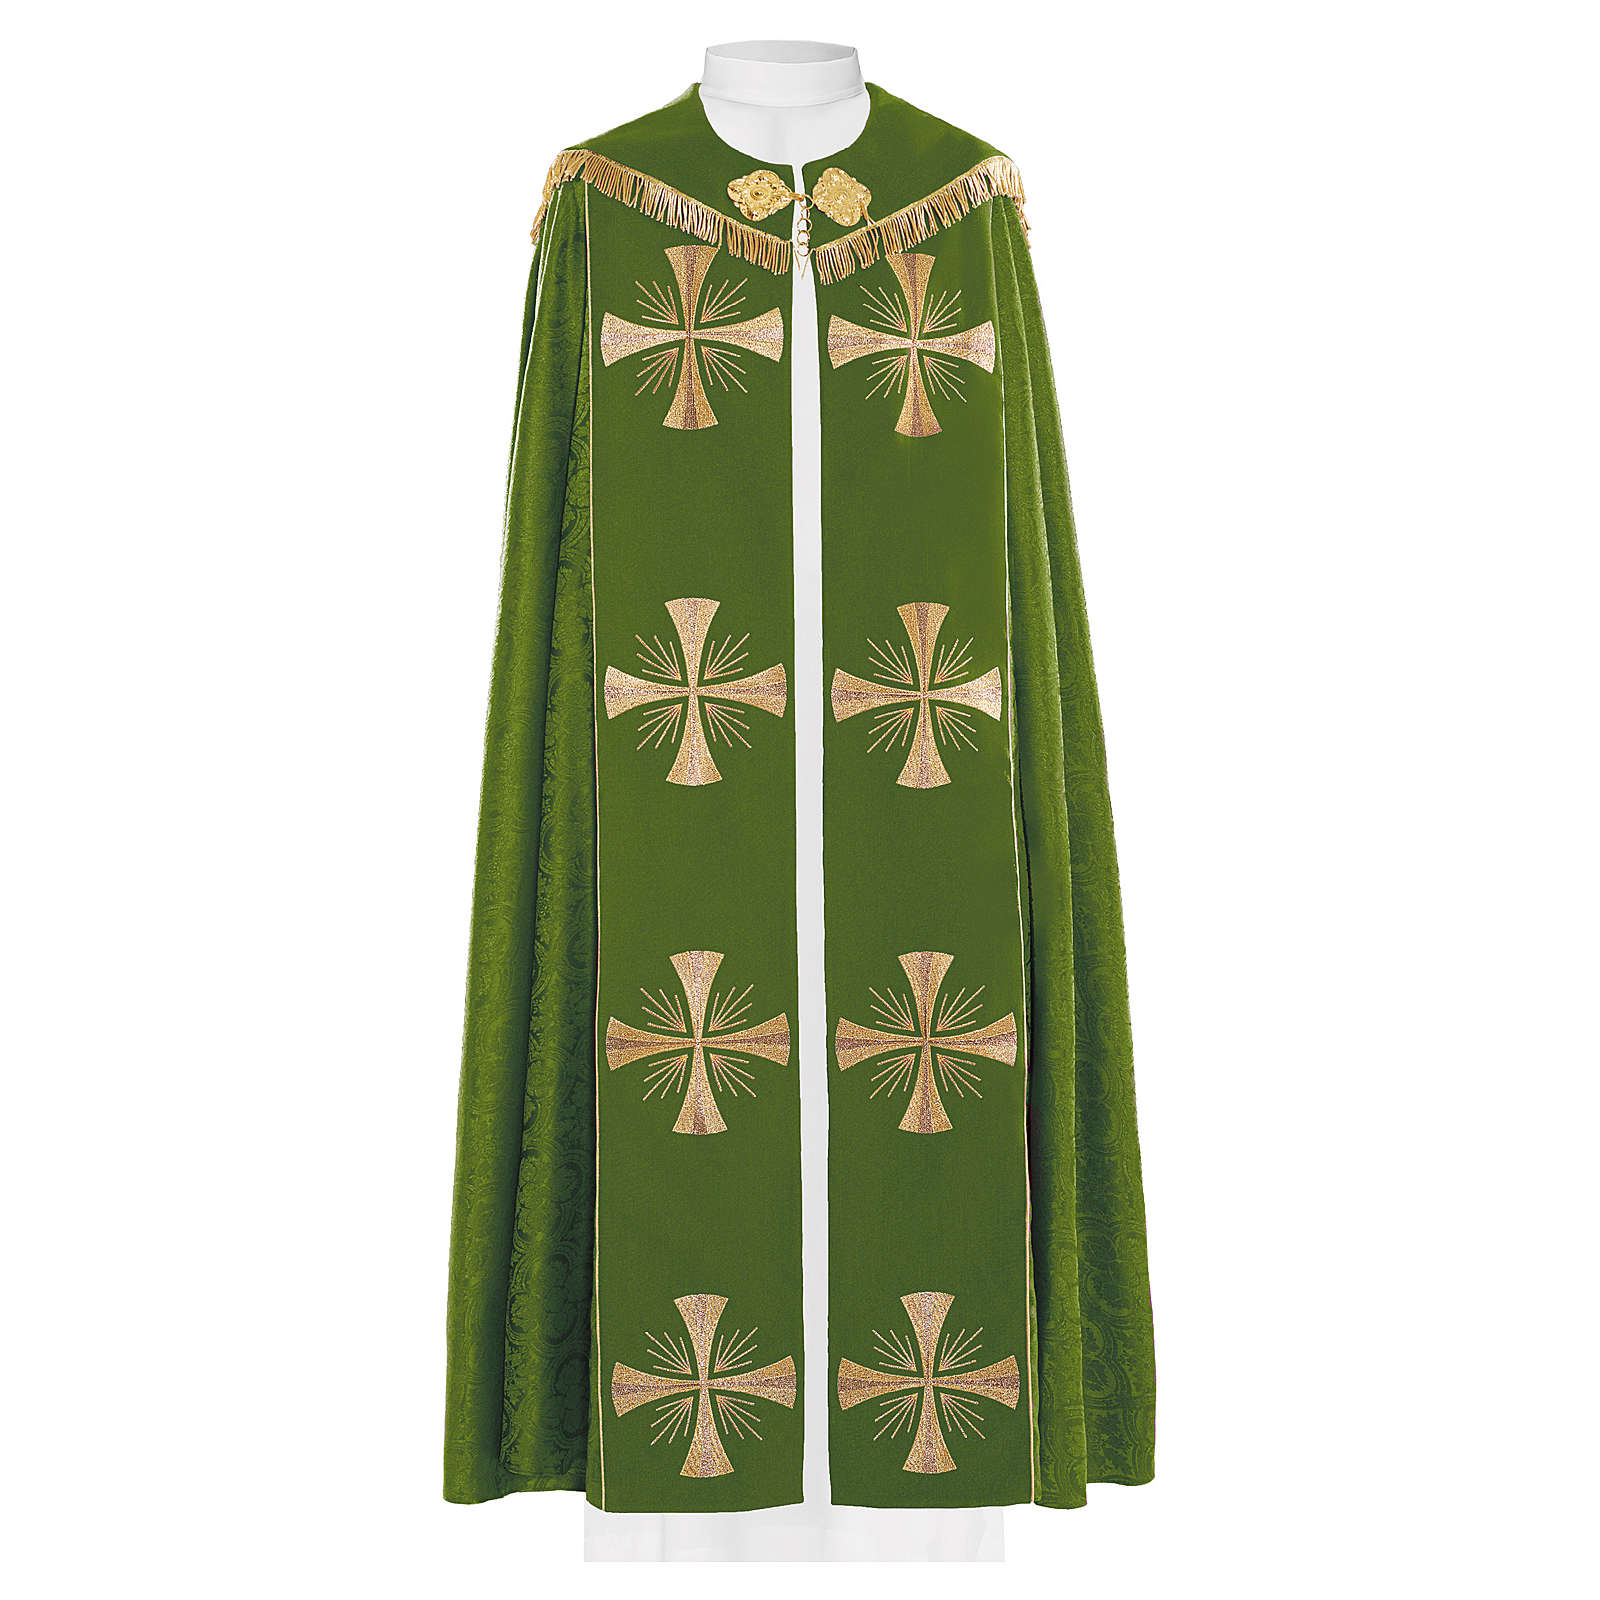 Cope in 100% green polyester with gold crosses 4